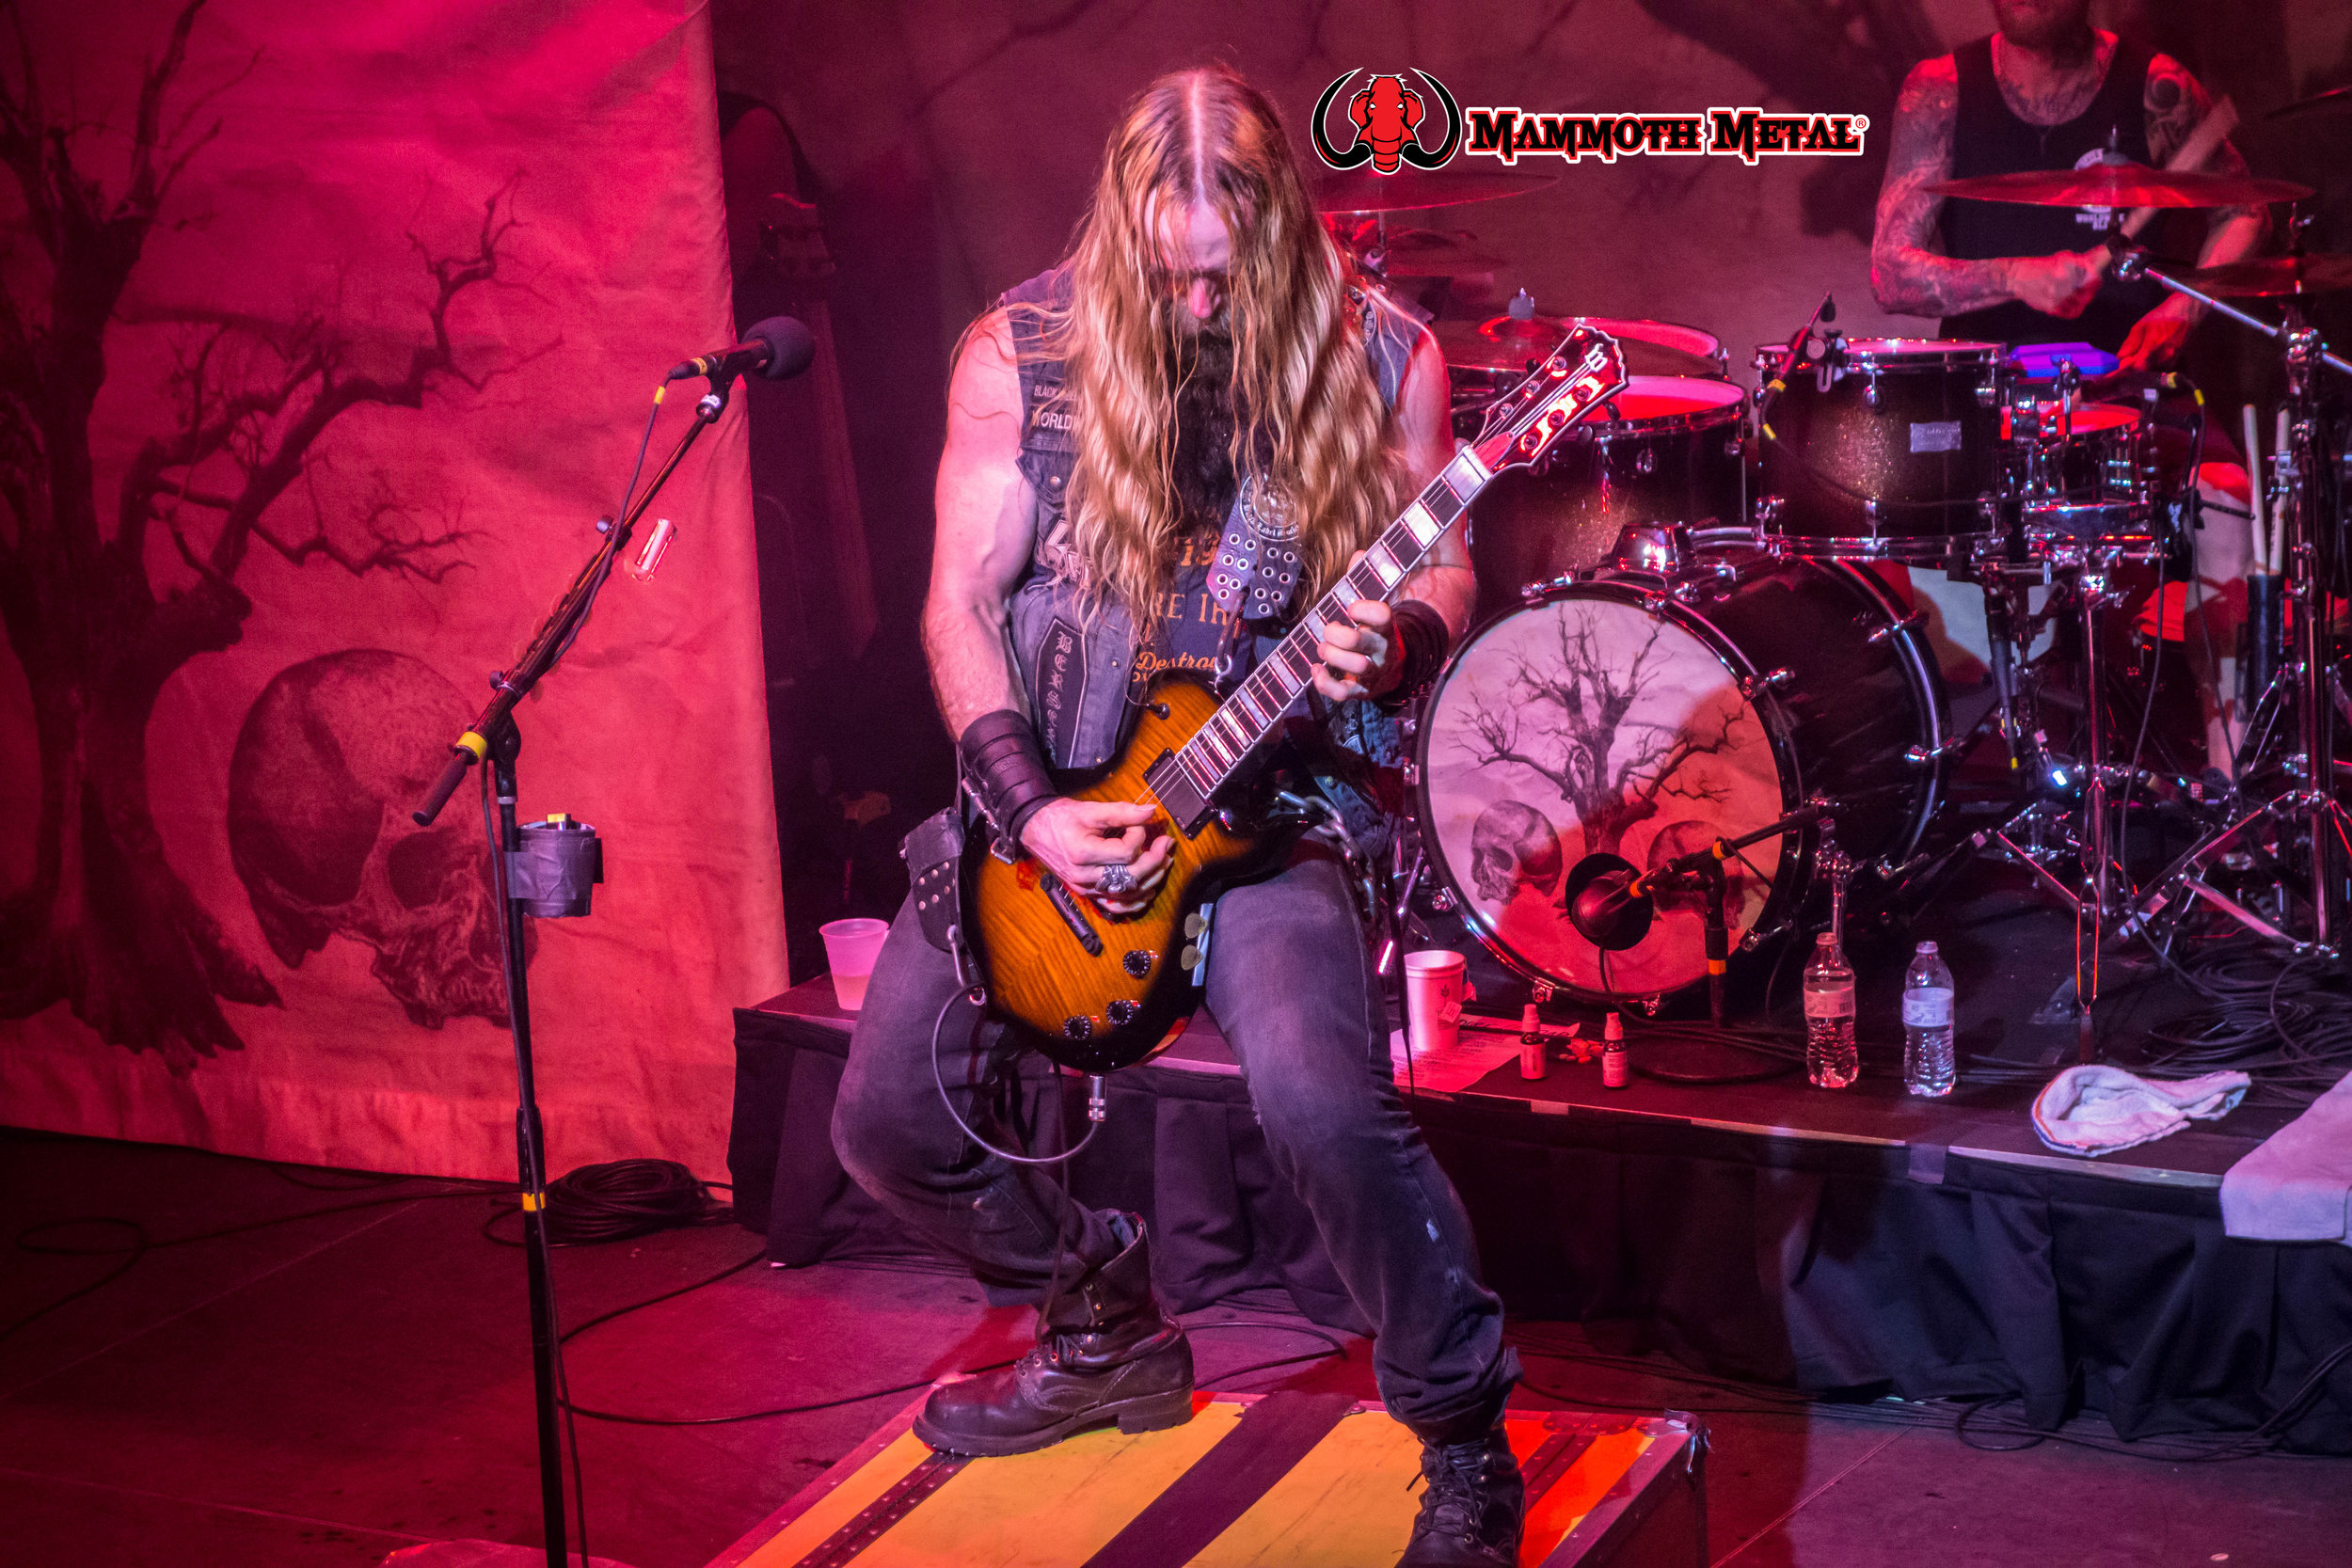 Zakk Wylde and his Doom Crew came for one thing and that was to kick our asses. Not only did he do that but showed us that BLS is stronger than ever as i cannot wait to see what else he and his special group of musicians bring to the realm.  See you at OZZ/Knot fest 2016! \m/  Zakk Wylde playing his  Wylde Audio Molasses ODIN Death Claw fiddle that he gives to a lucky fan after the show.  photo:David Burke